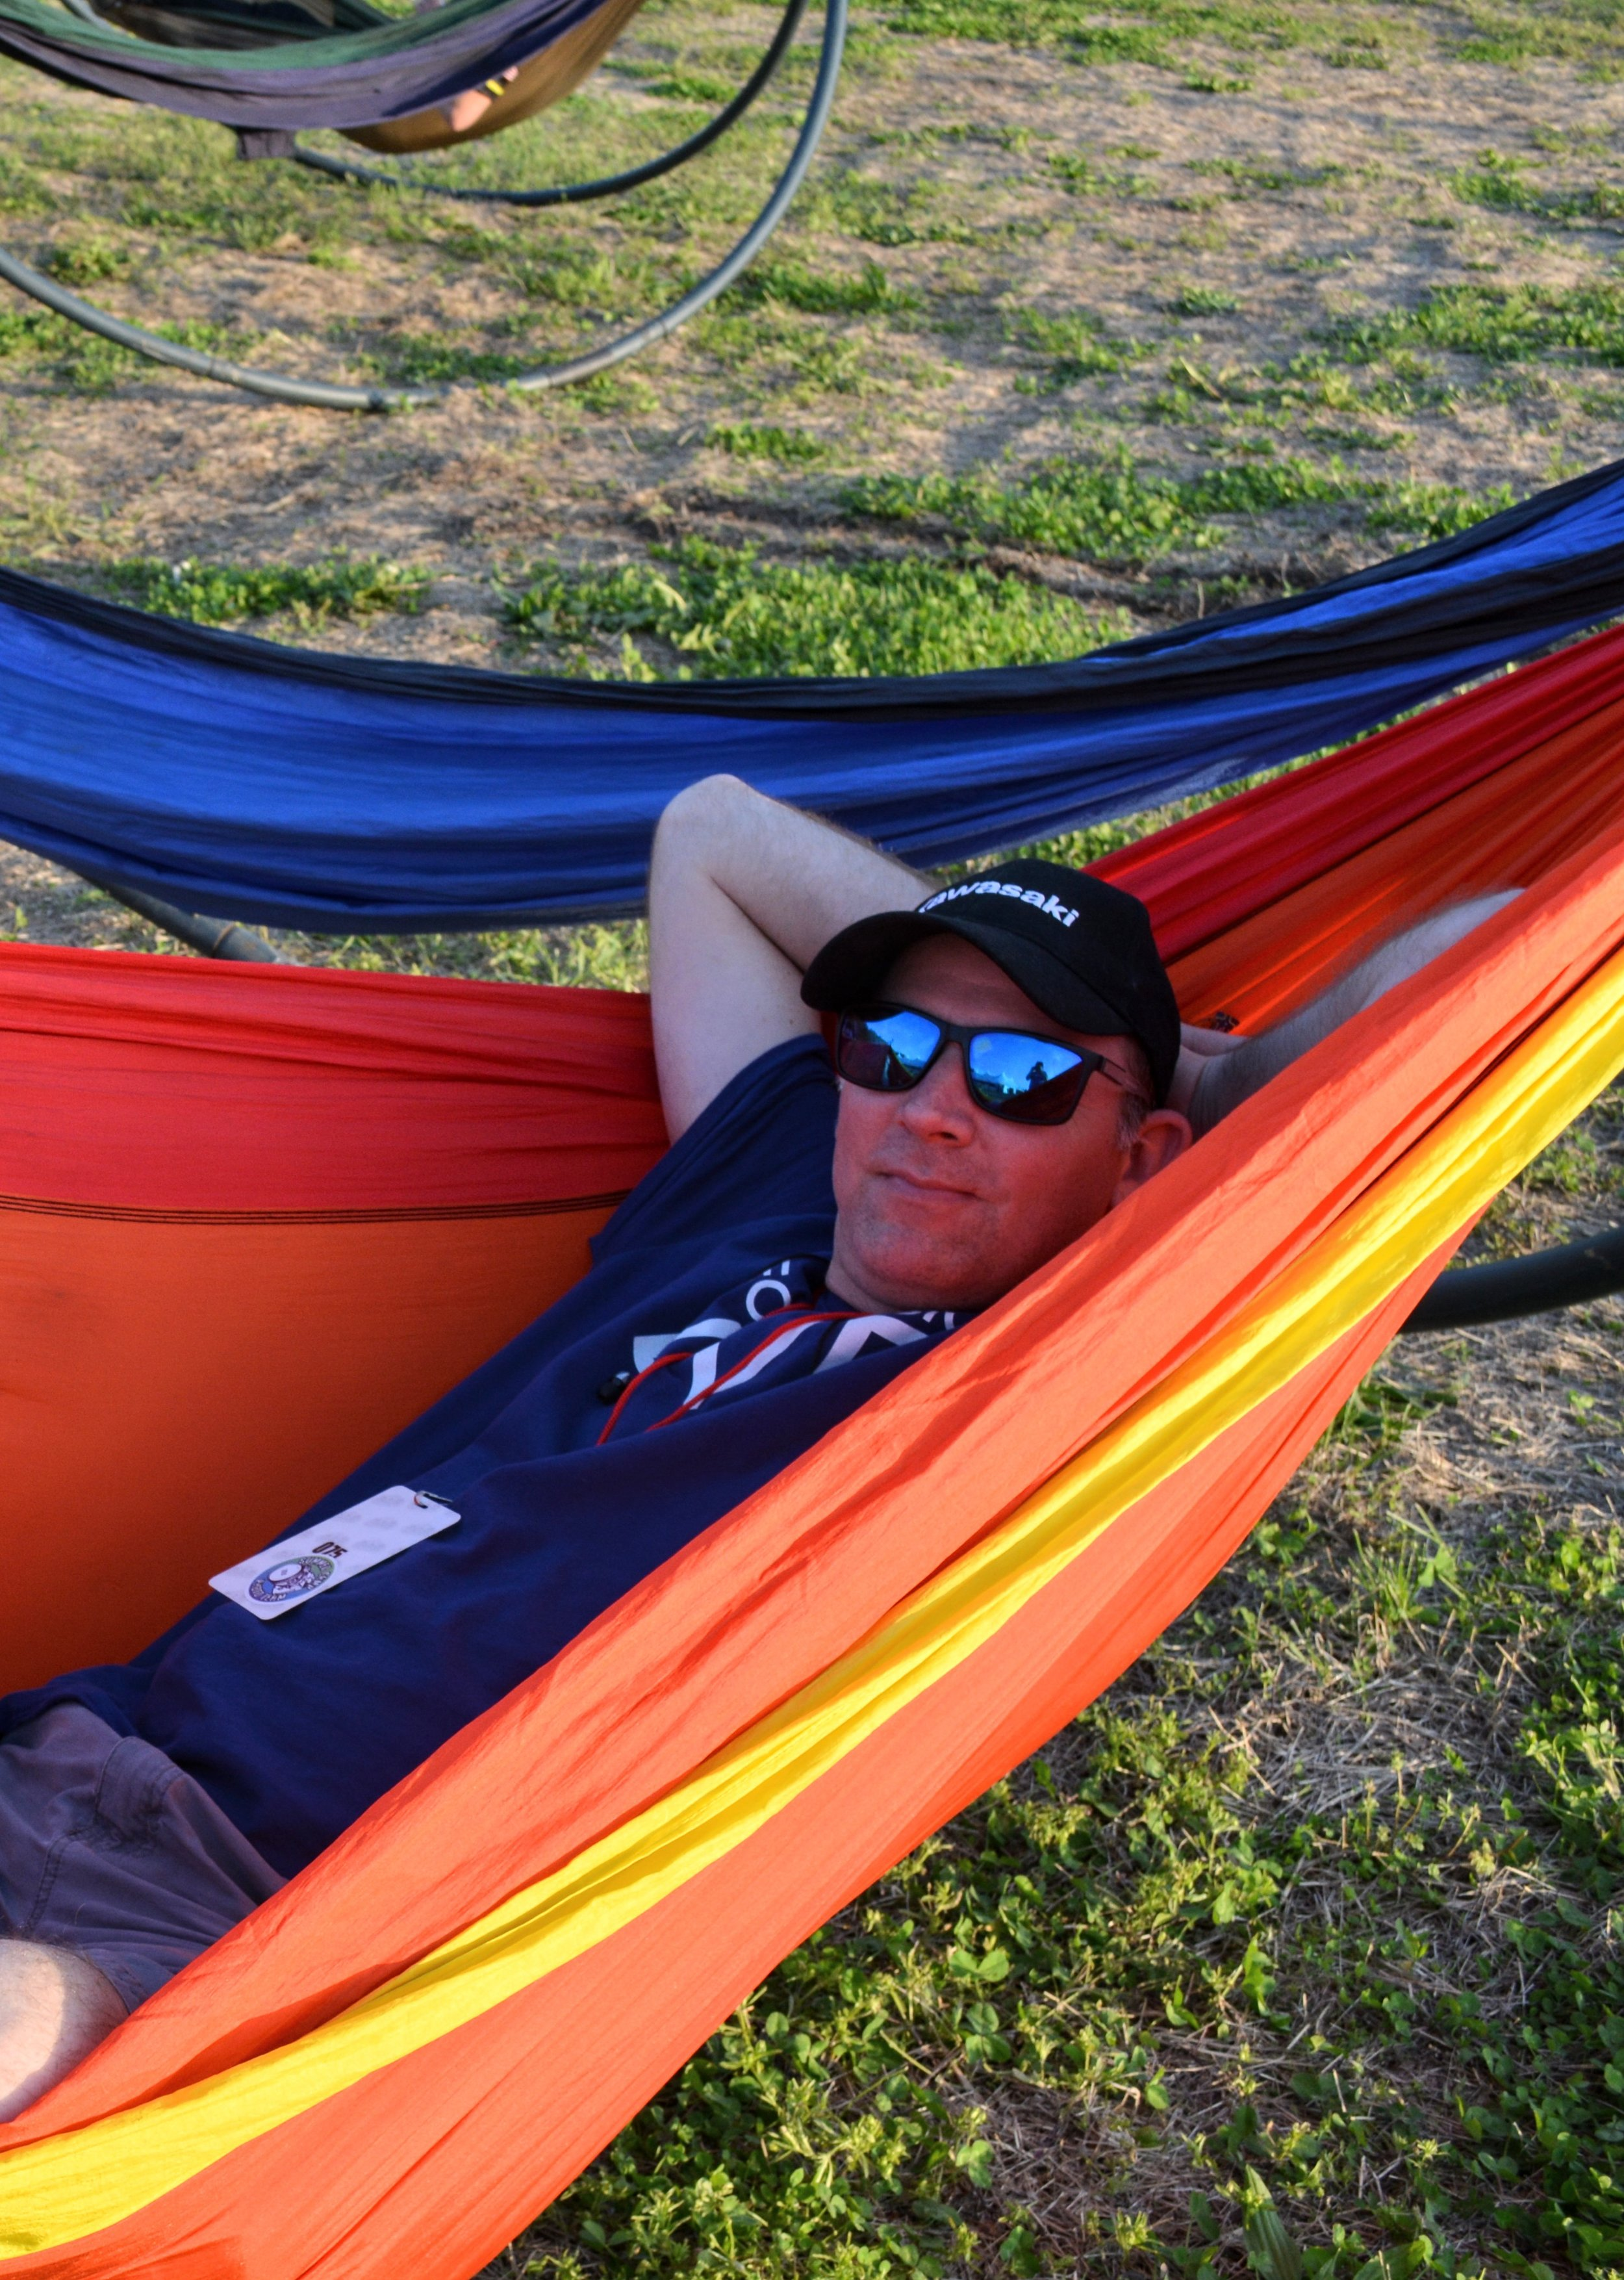 Mike trying out the hammocks.